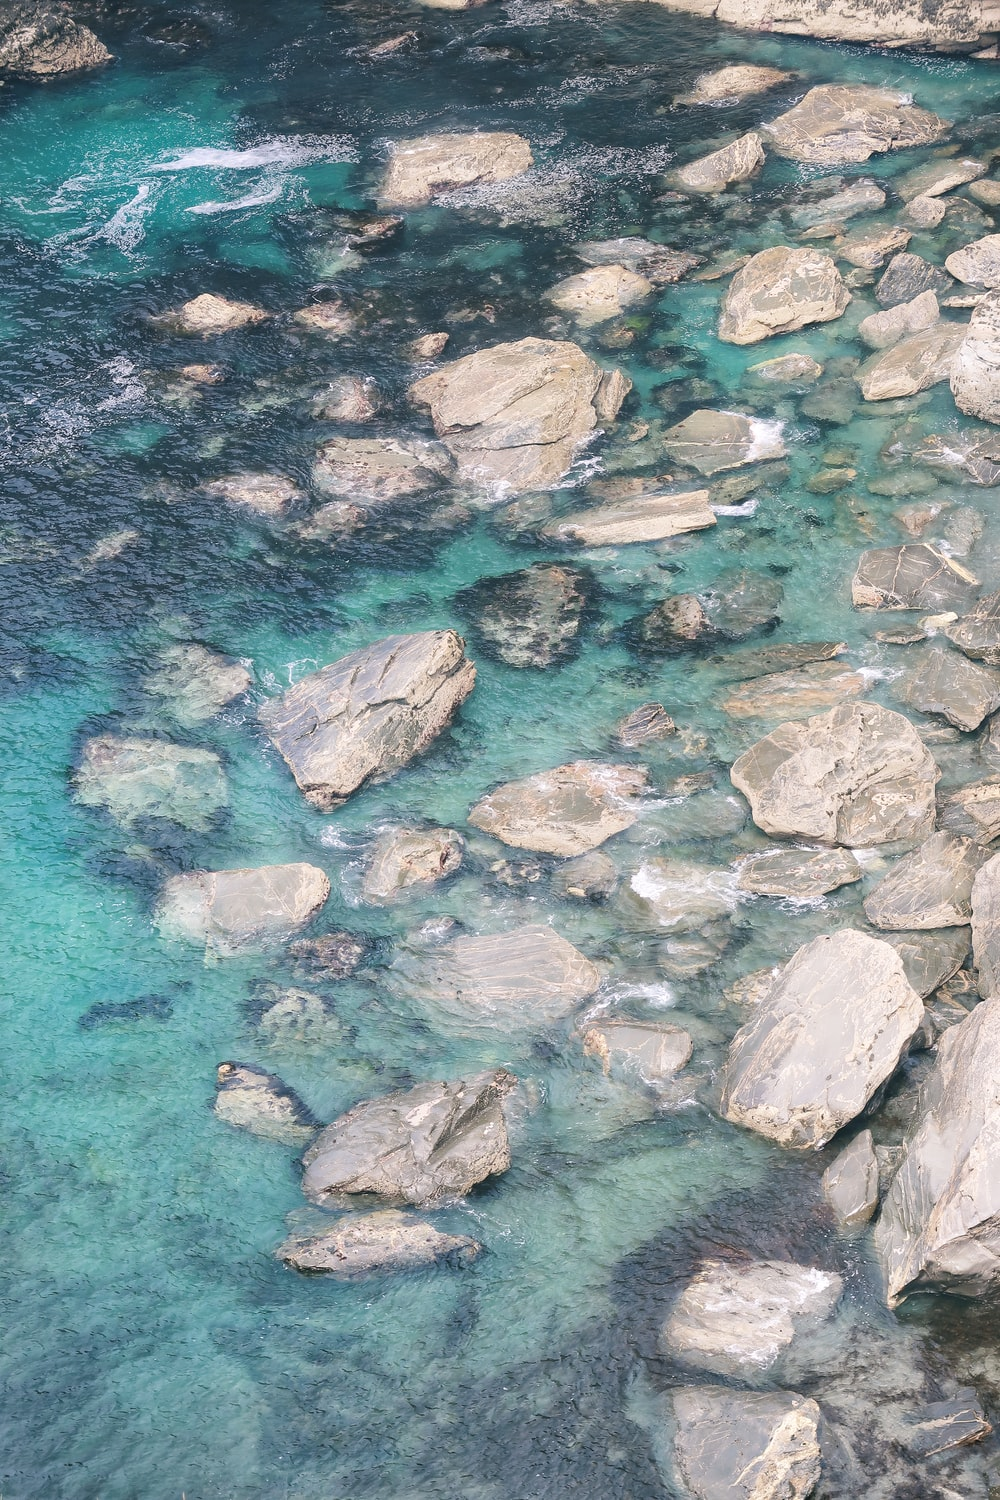 aerial photography of gray rocks and body of water at daytime